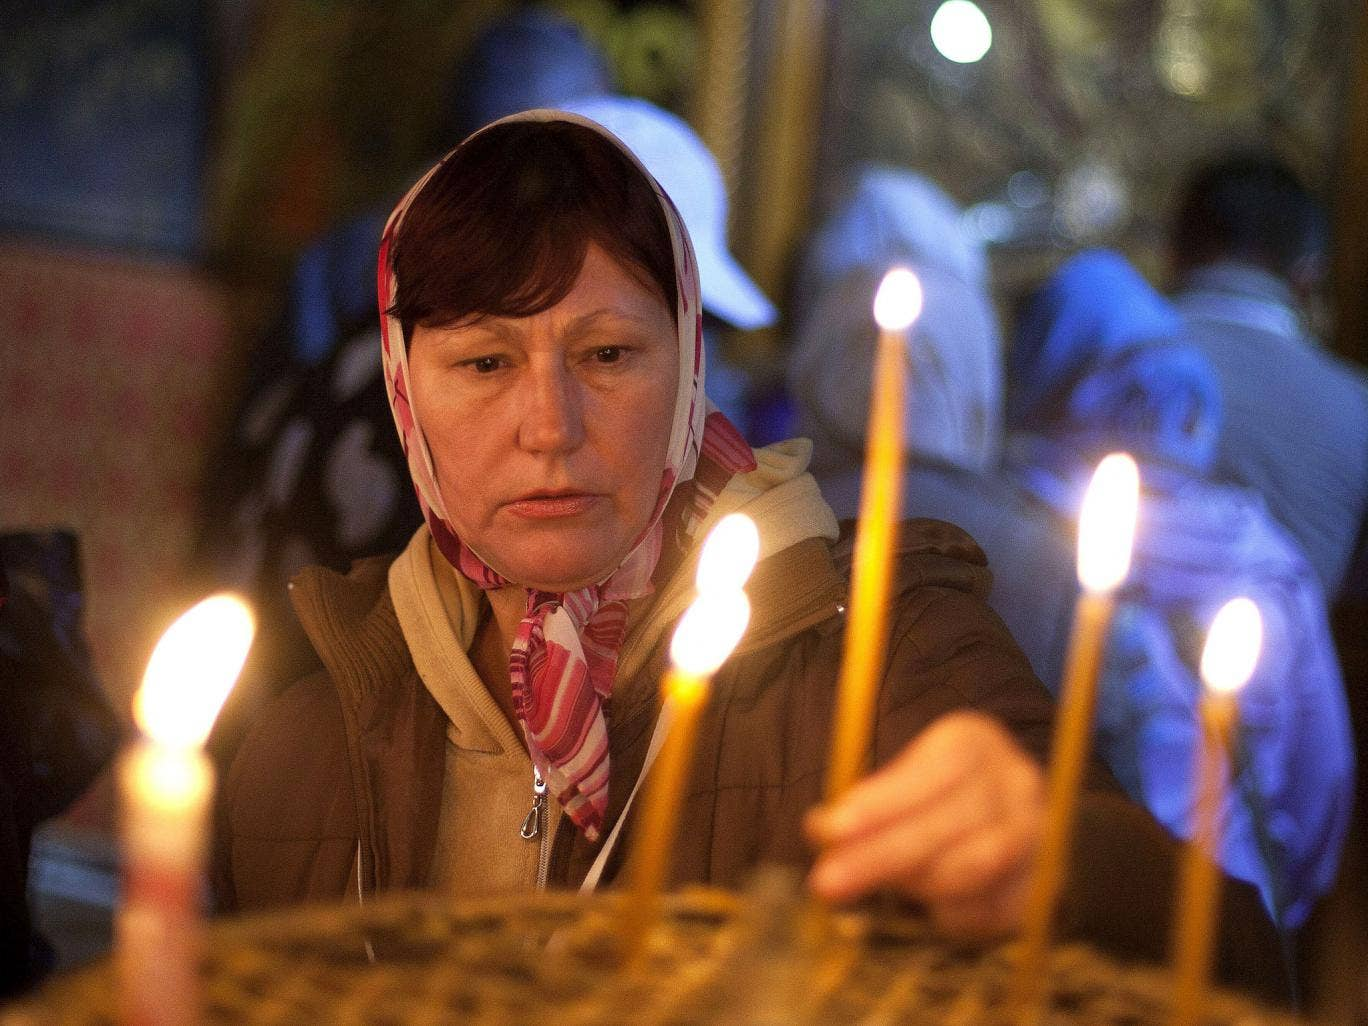 A worshipper lights candles at the Church of the Nativity